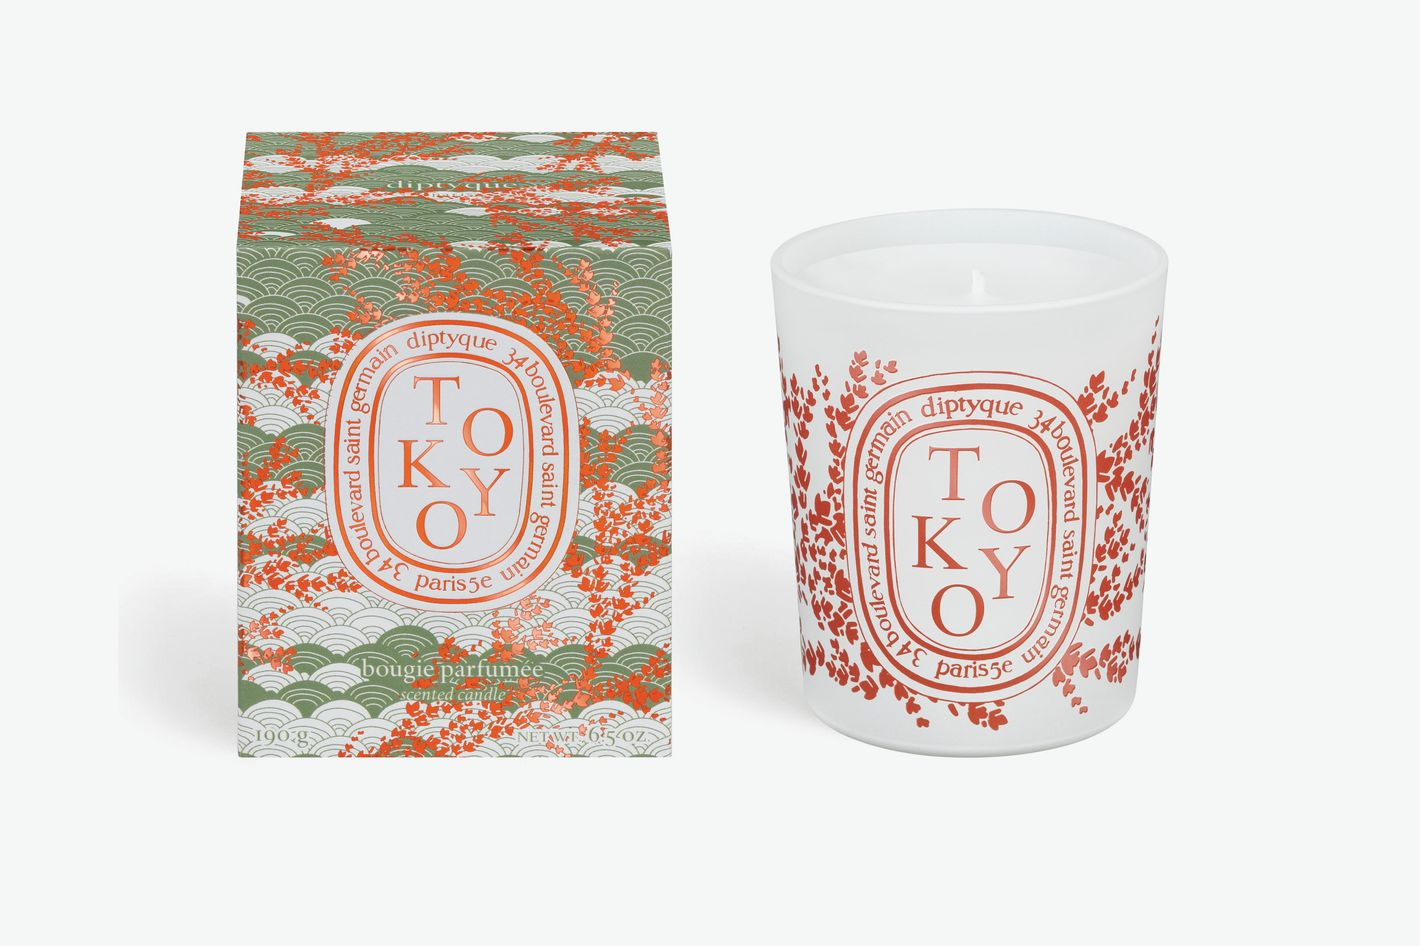 Tokyo Scented Candle